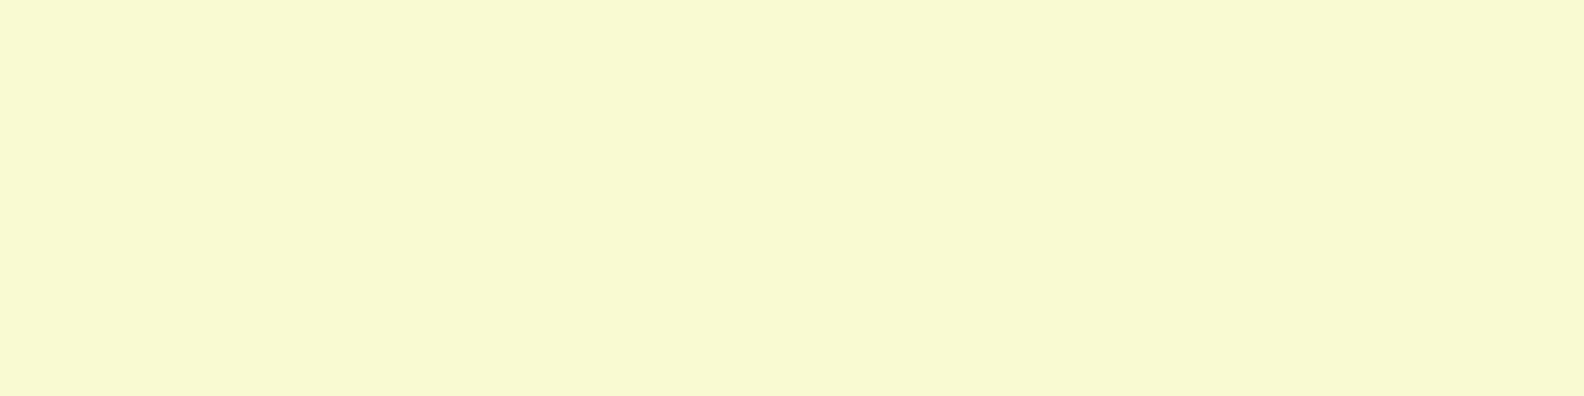 1584x396 Light Goldenrod Yellow Solid Color Background